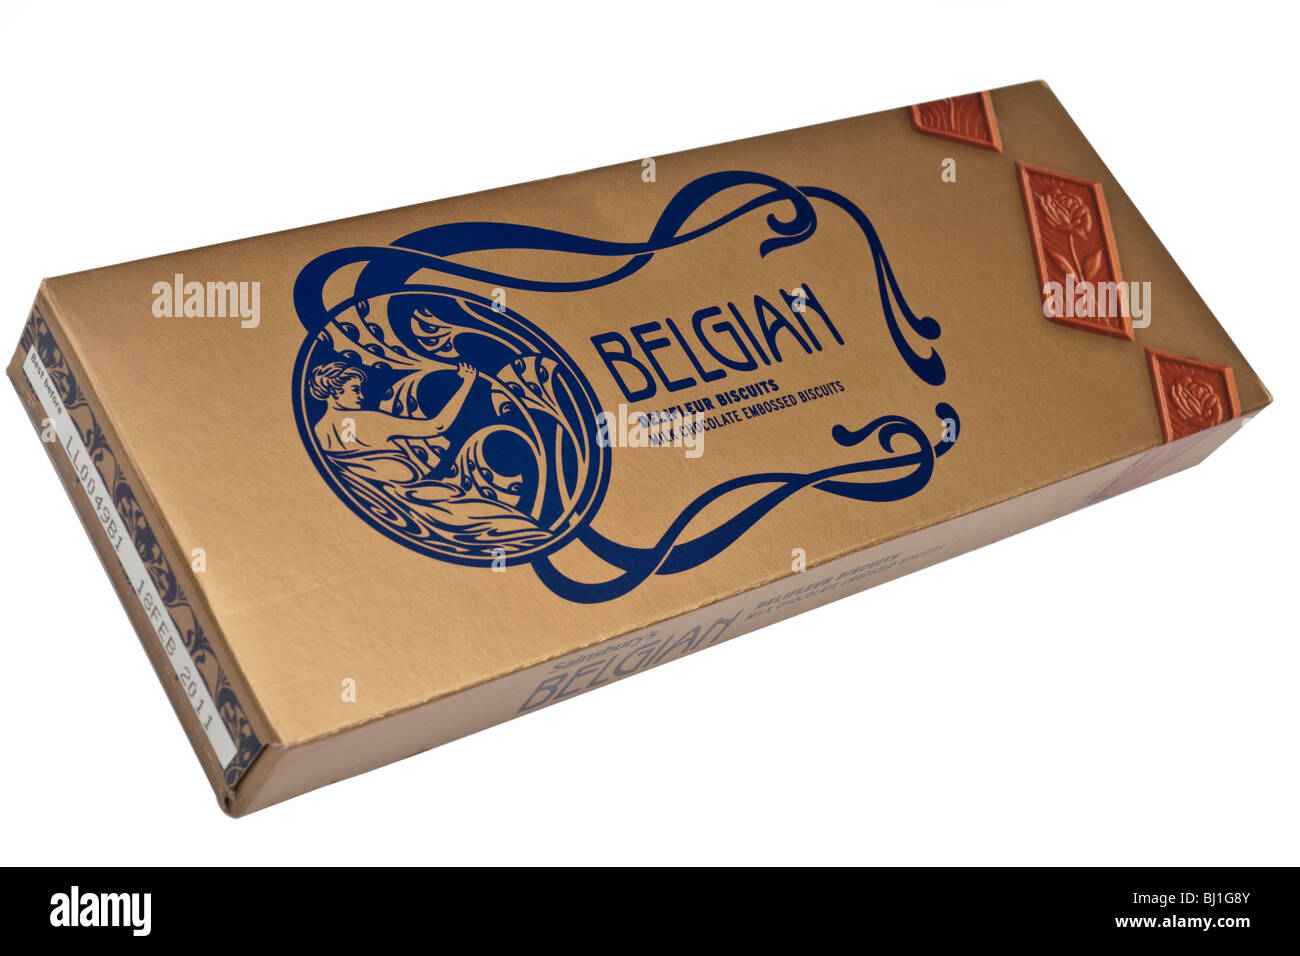 Embossed box of Belgian milk chocolate biscuits - Stock Image